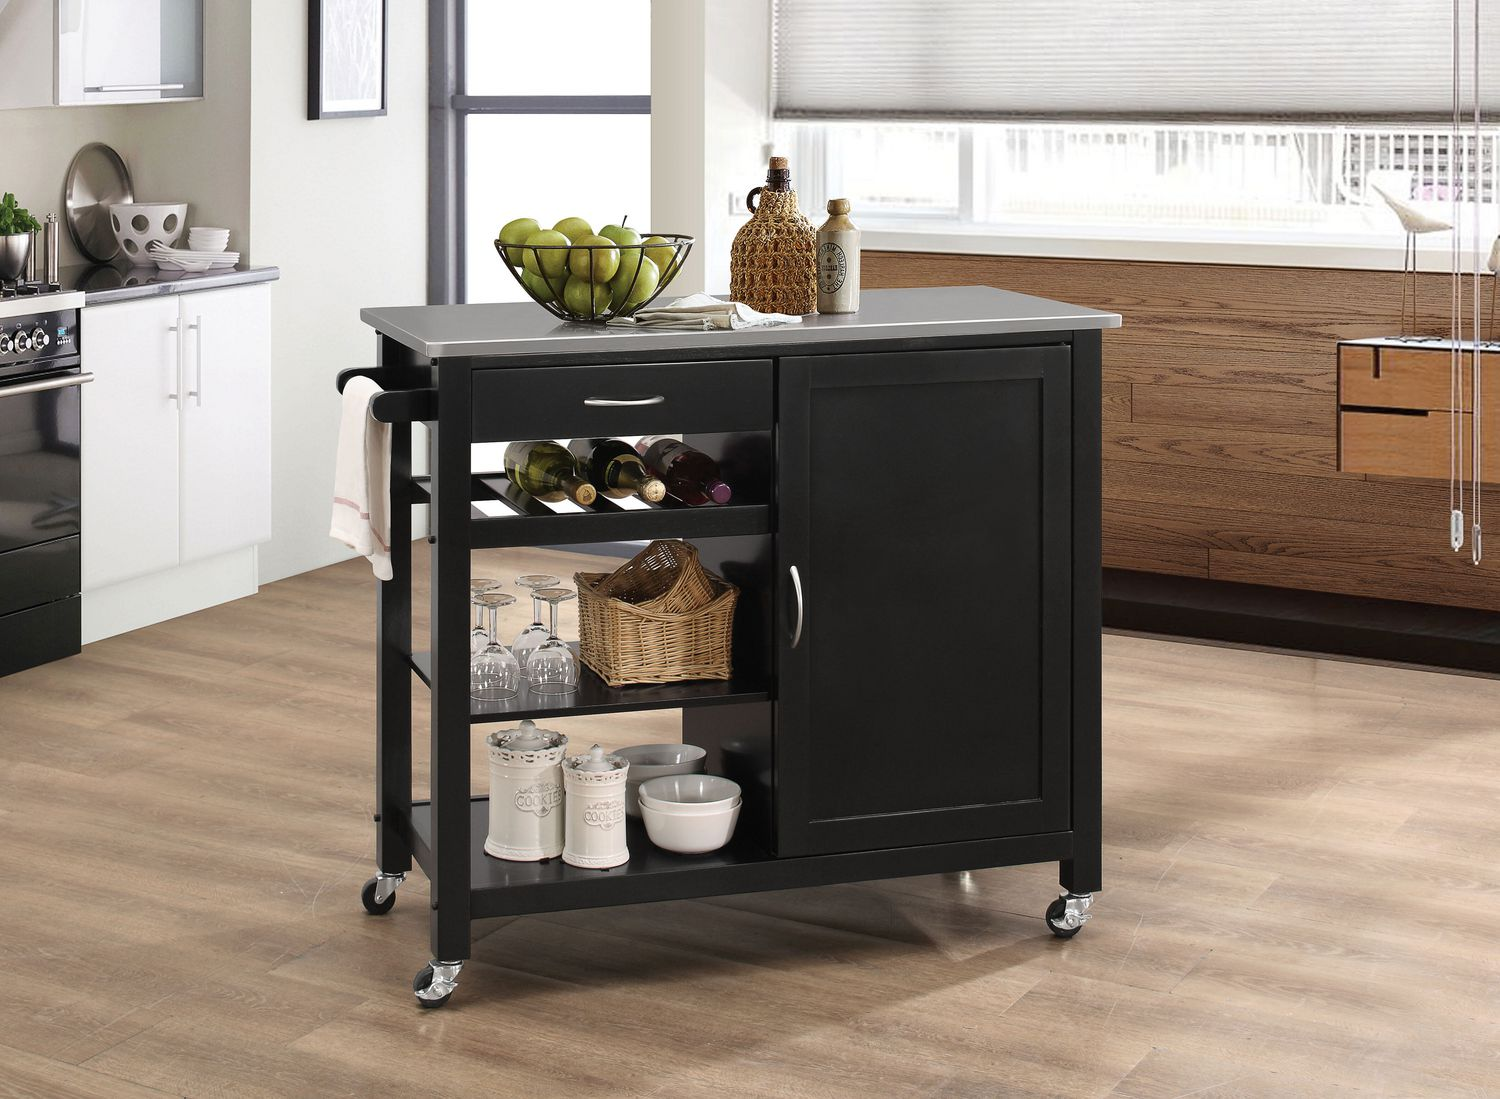 Picture of: Acme Ottawa Kitchen Cart In Stainless Steel Black Walmart Canada